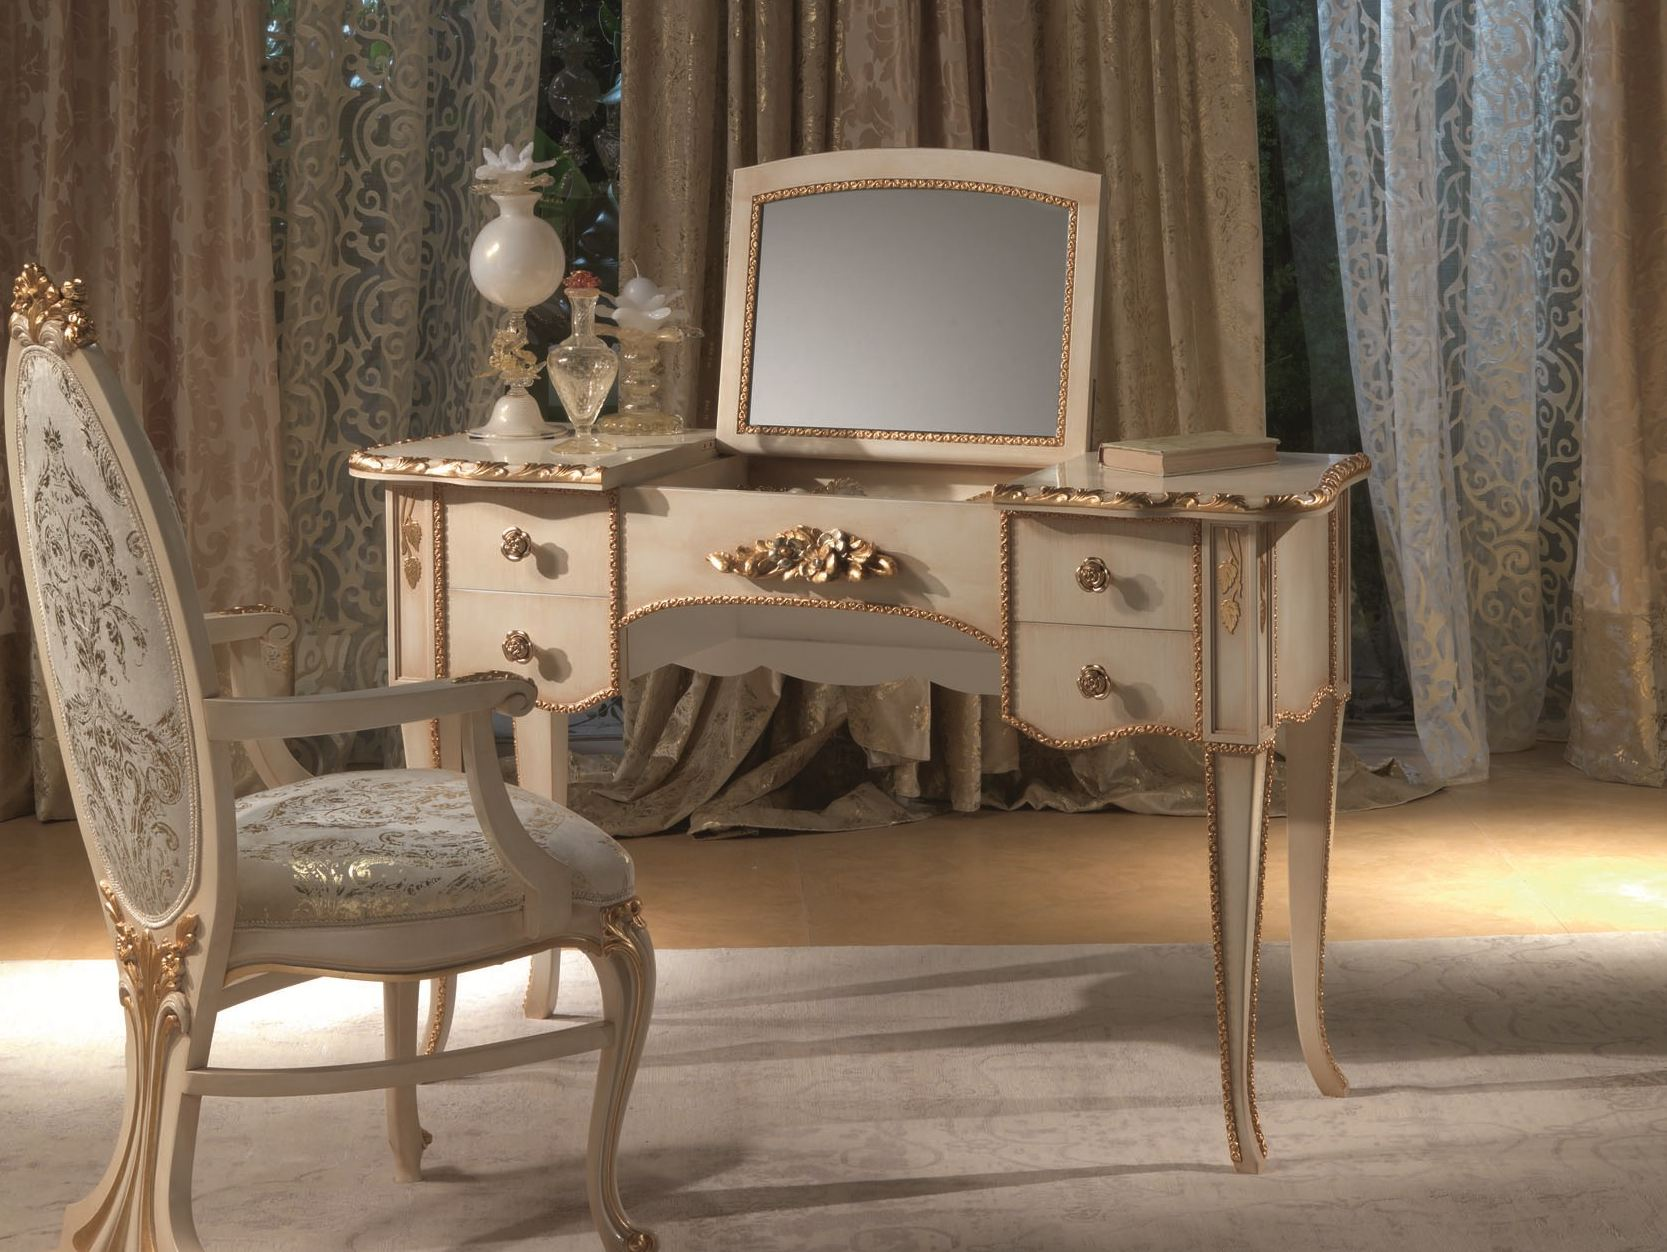 VANITY Dressing table by Carpanelli Classic : prodotti 89853 relfc7884a19bf749619dfc7adfe7d2bb6d from www.archiproducts.com size 1667 x 1252 jpeg 269kB